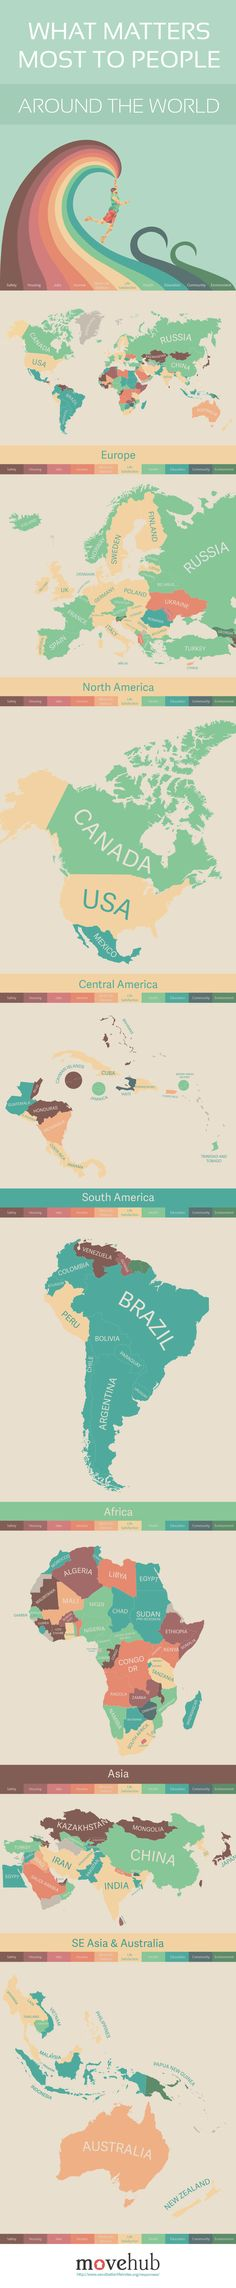 What Matters Most to People Around the World #infographic #Lifestyle #Travel